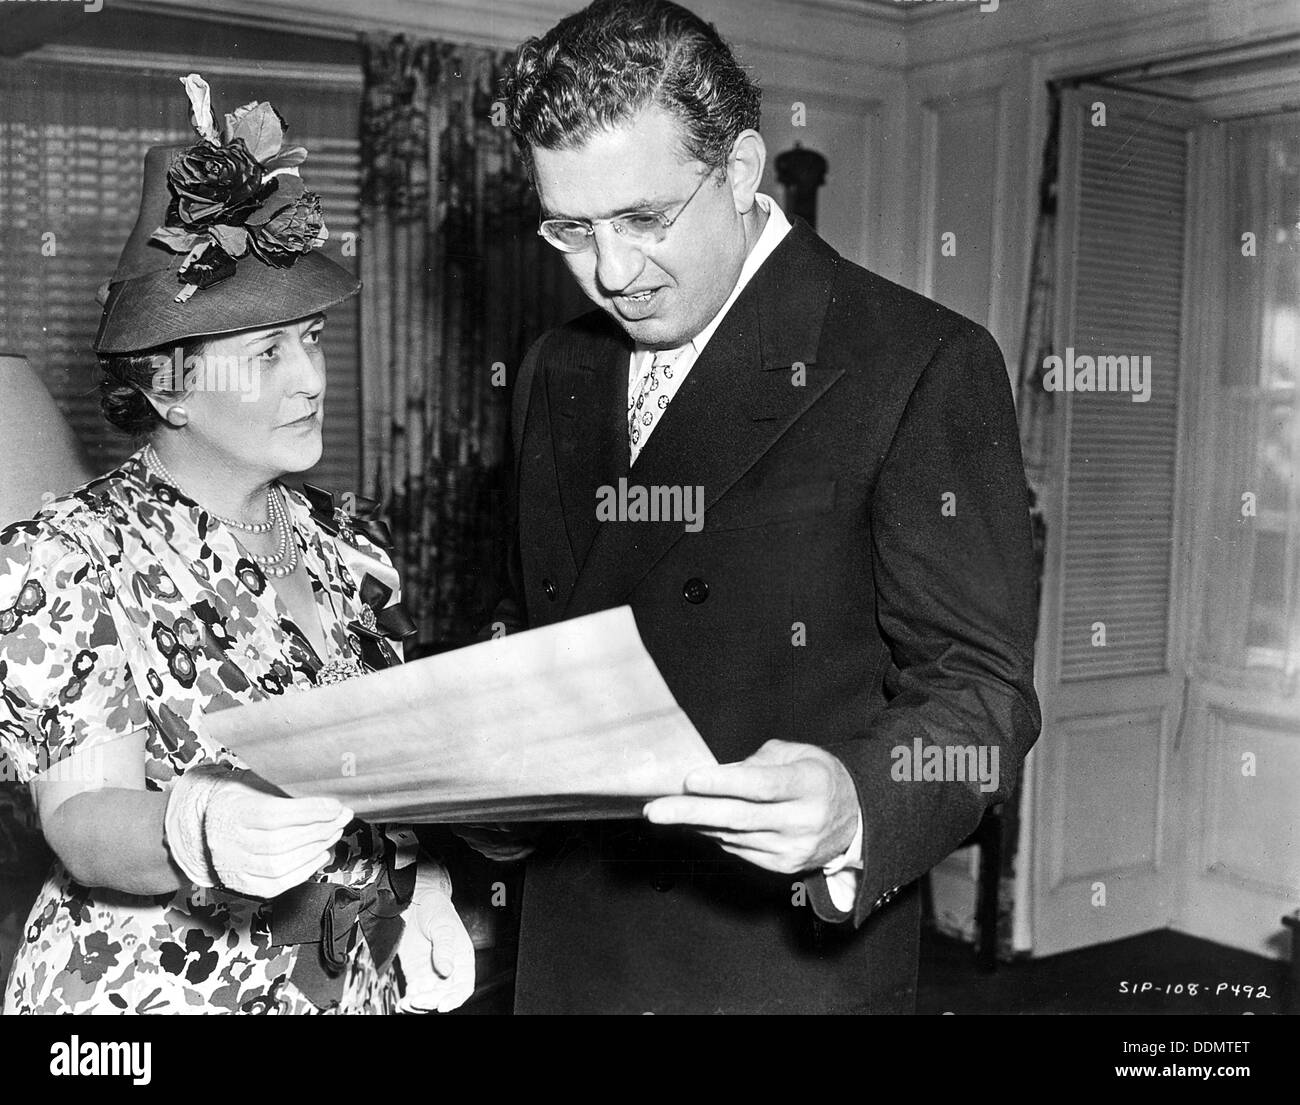 David O Selznick (1902-65), American producer and director. - Stock Image